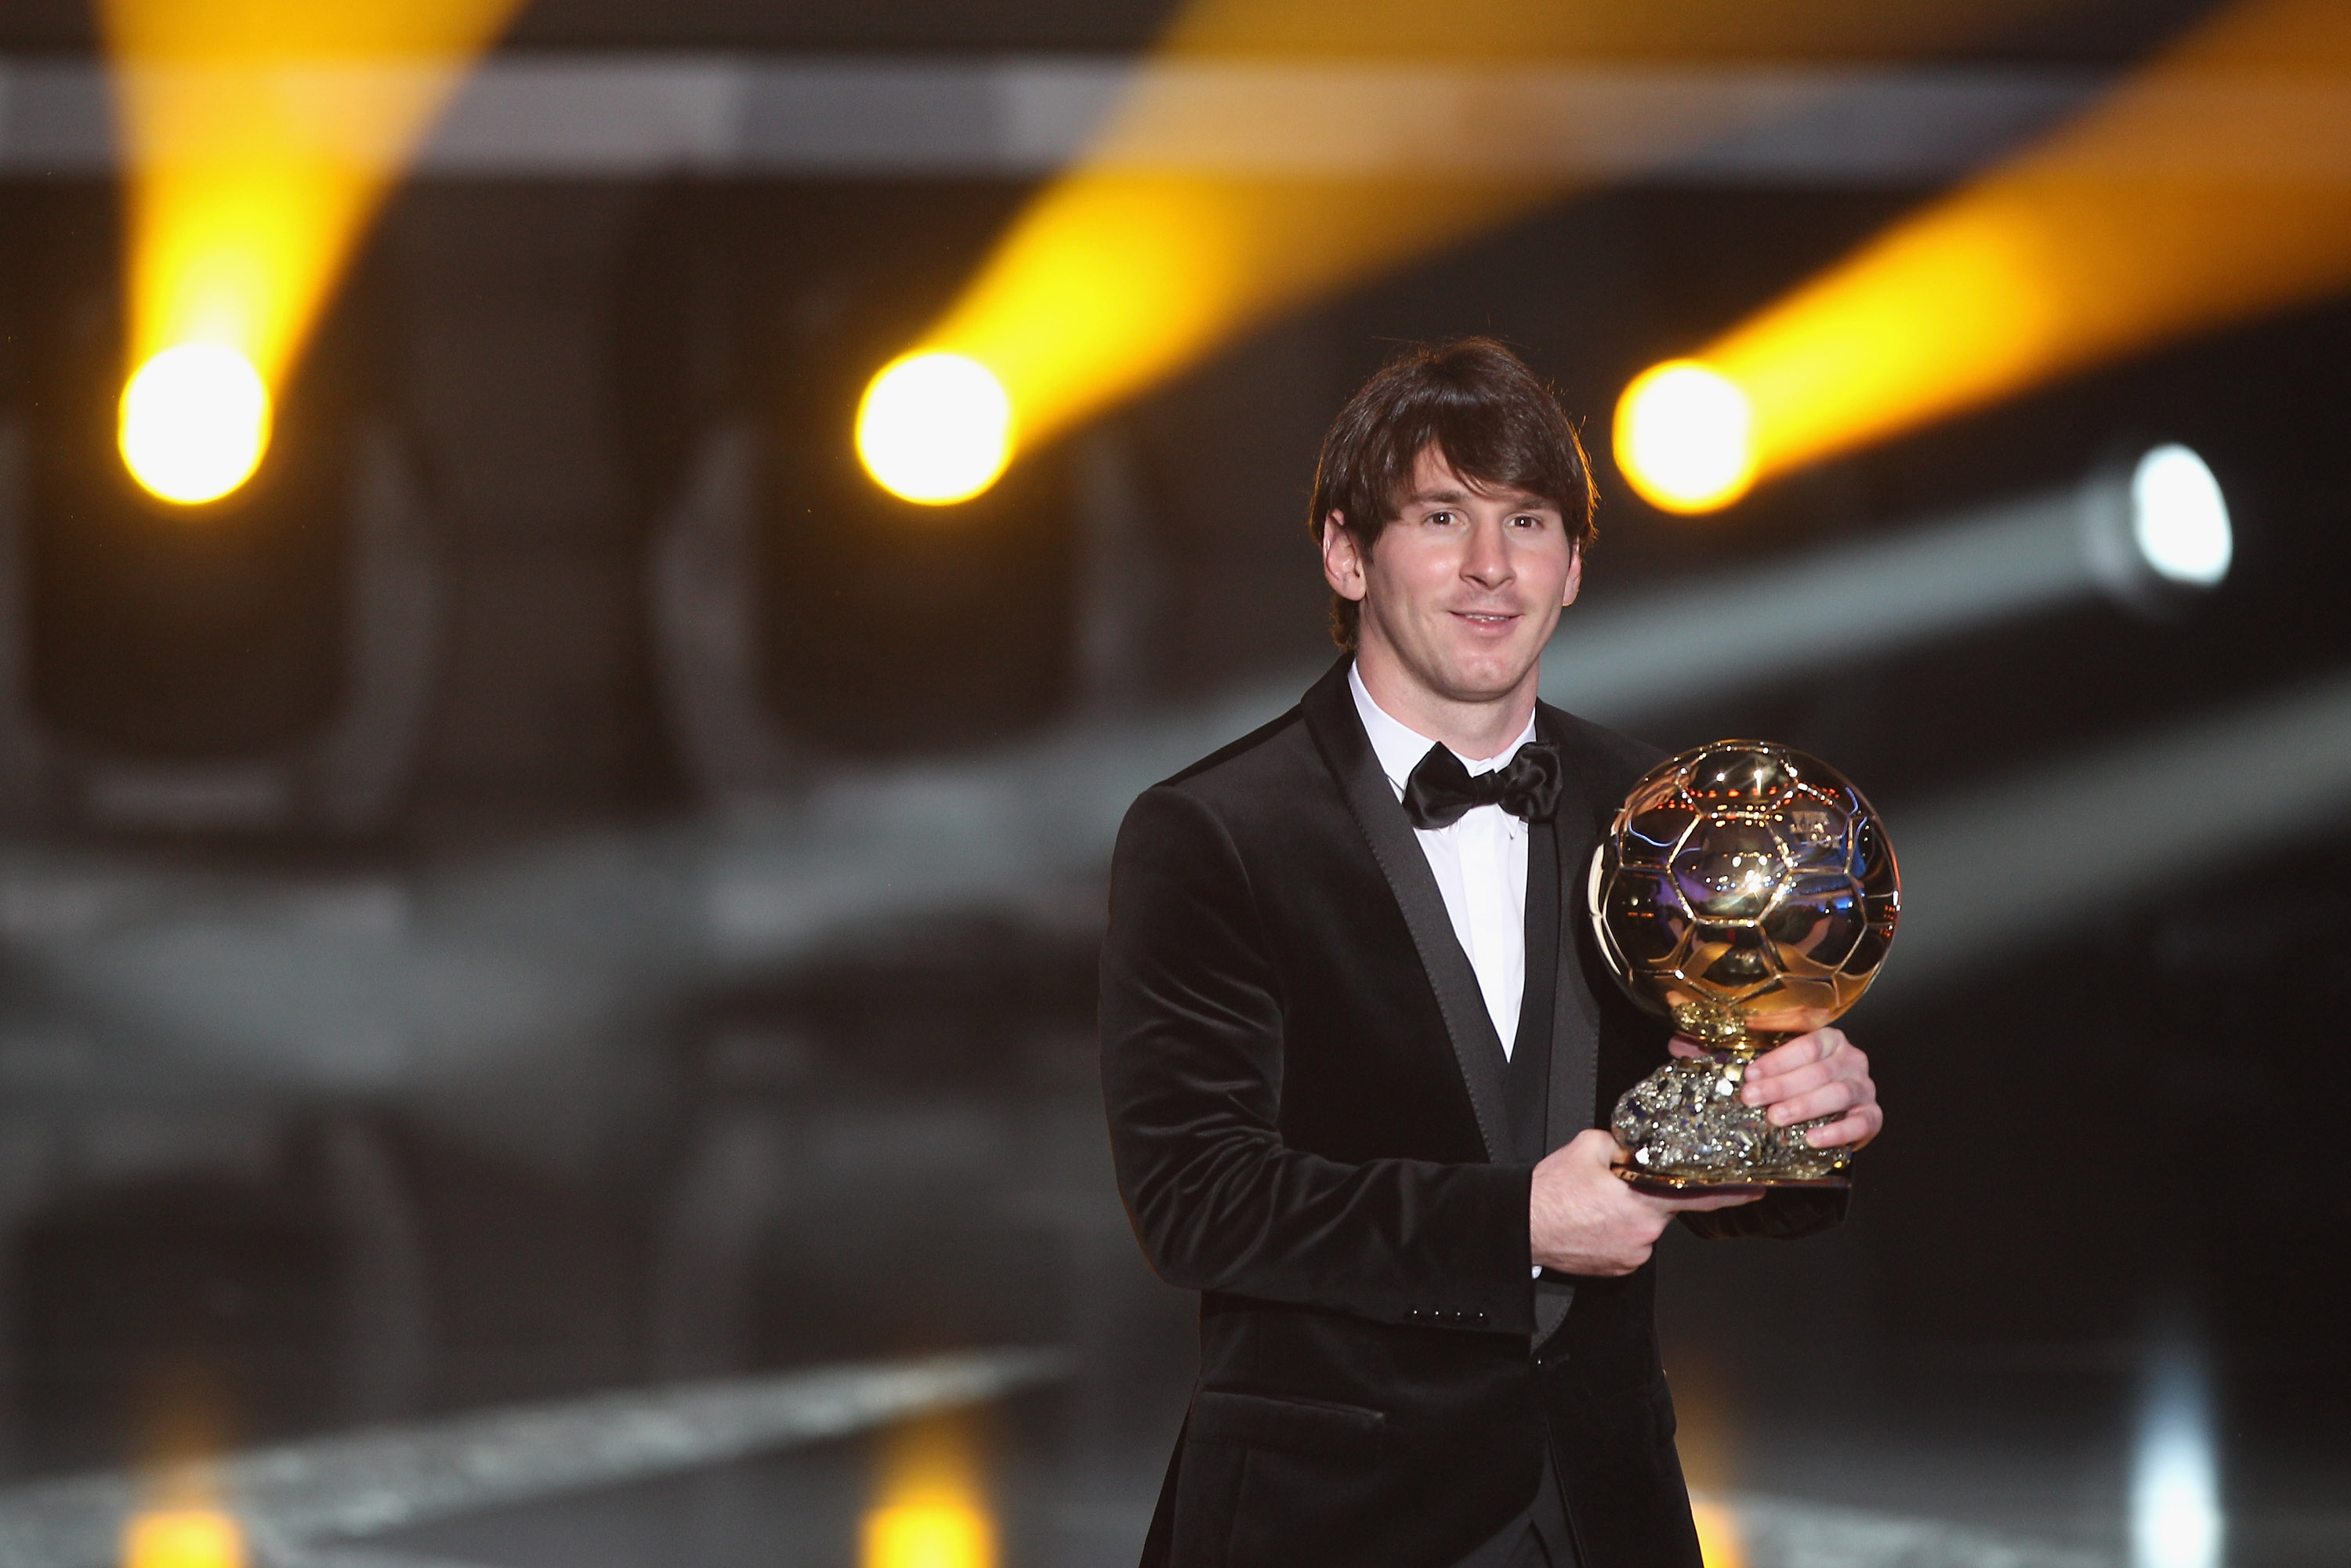 A third Ballon d'Or will be guaranteed if Messi and Argentina can win the Copa America this year